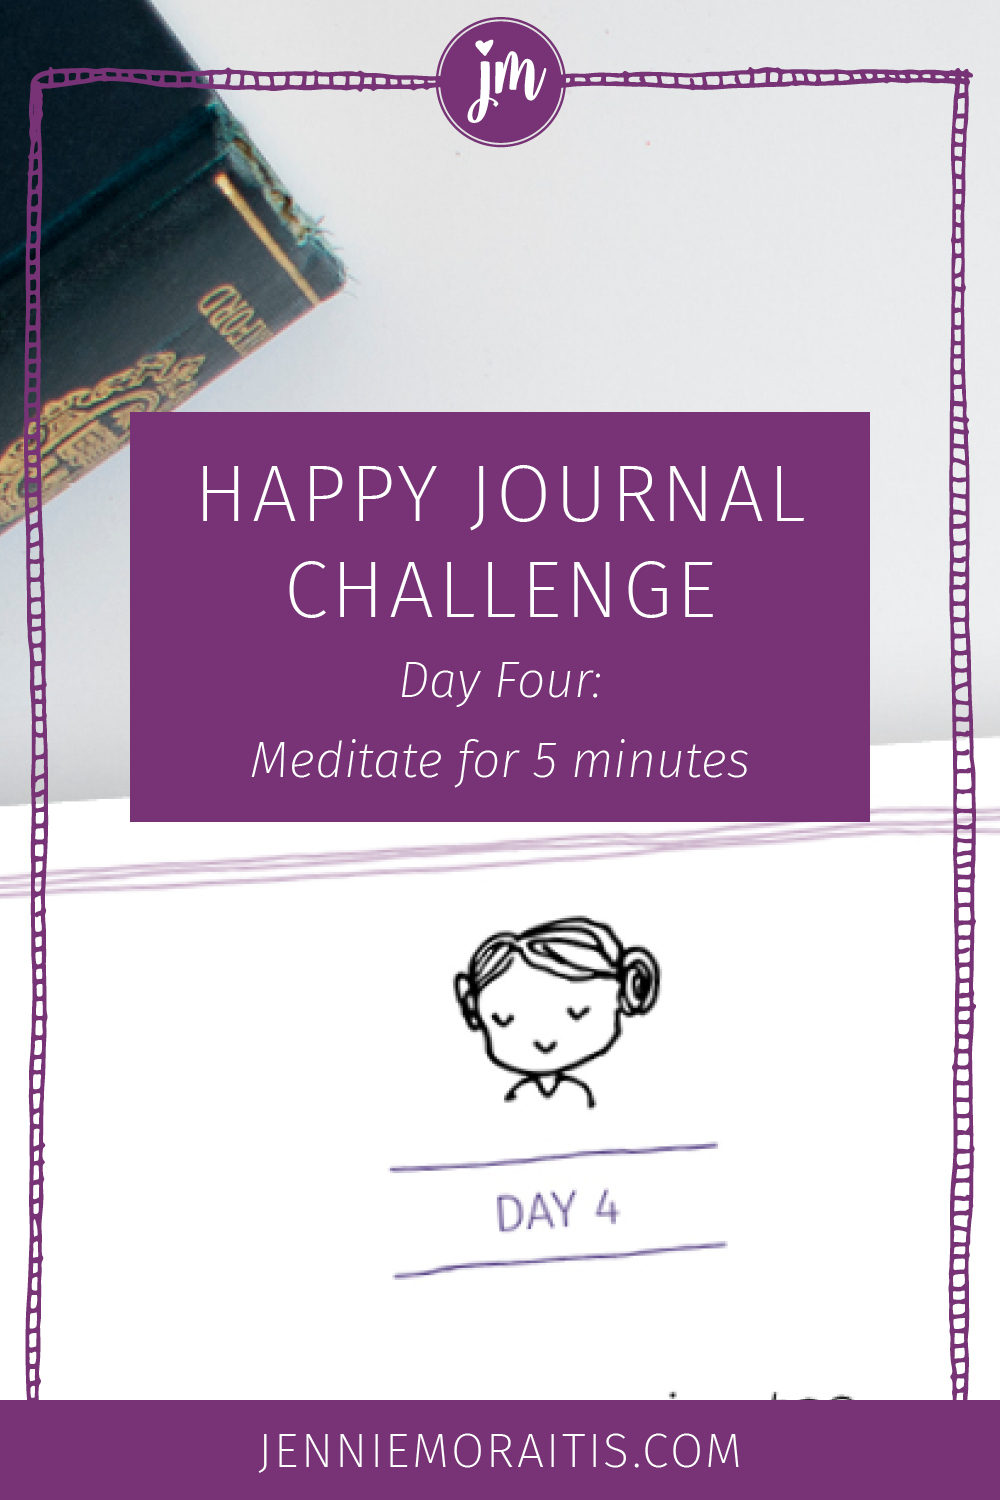 Grow your mindfulness and happiness muscles with the happy journal challenge! Today we're going to take some time for meditation. Ah, deep breaths. Download your booklet and click to watch today's video.